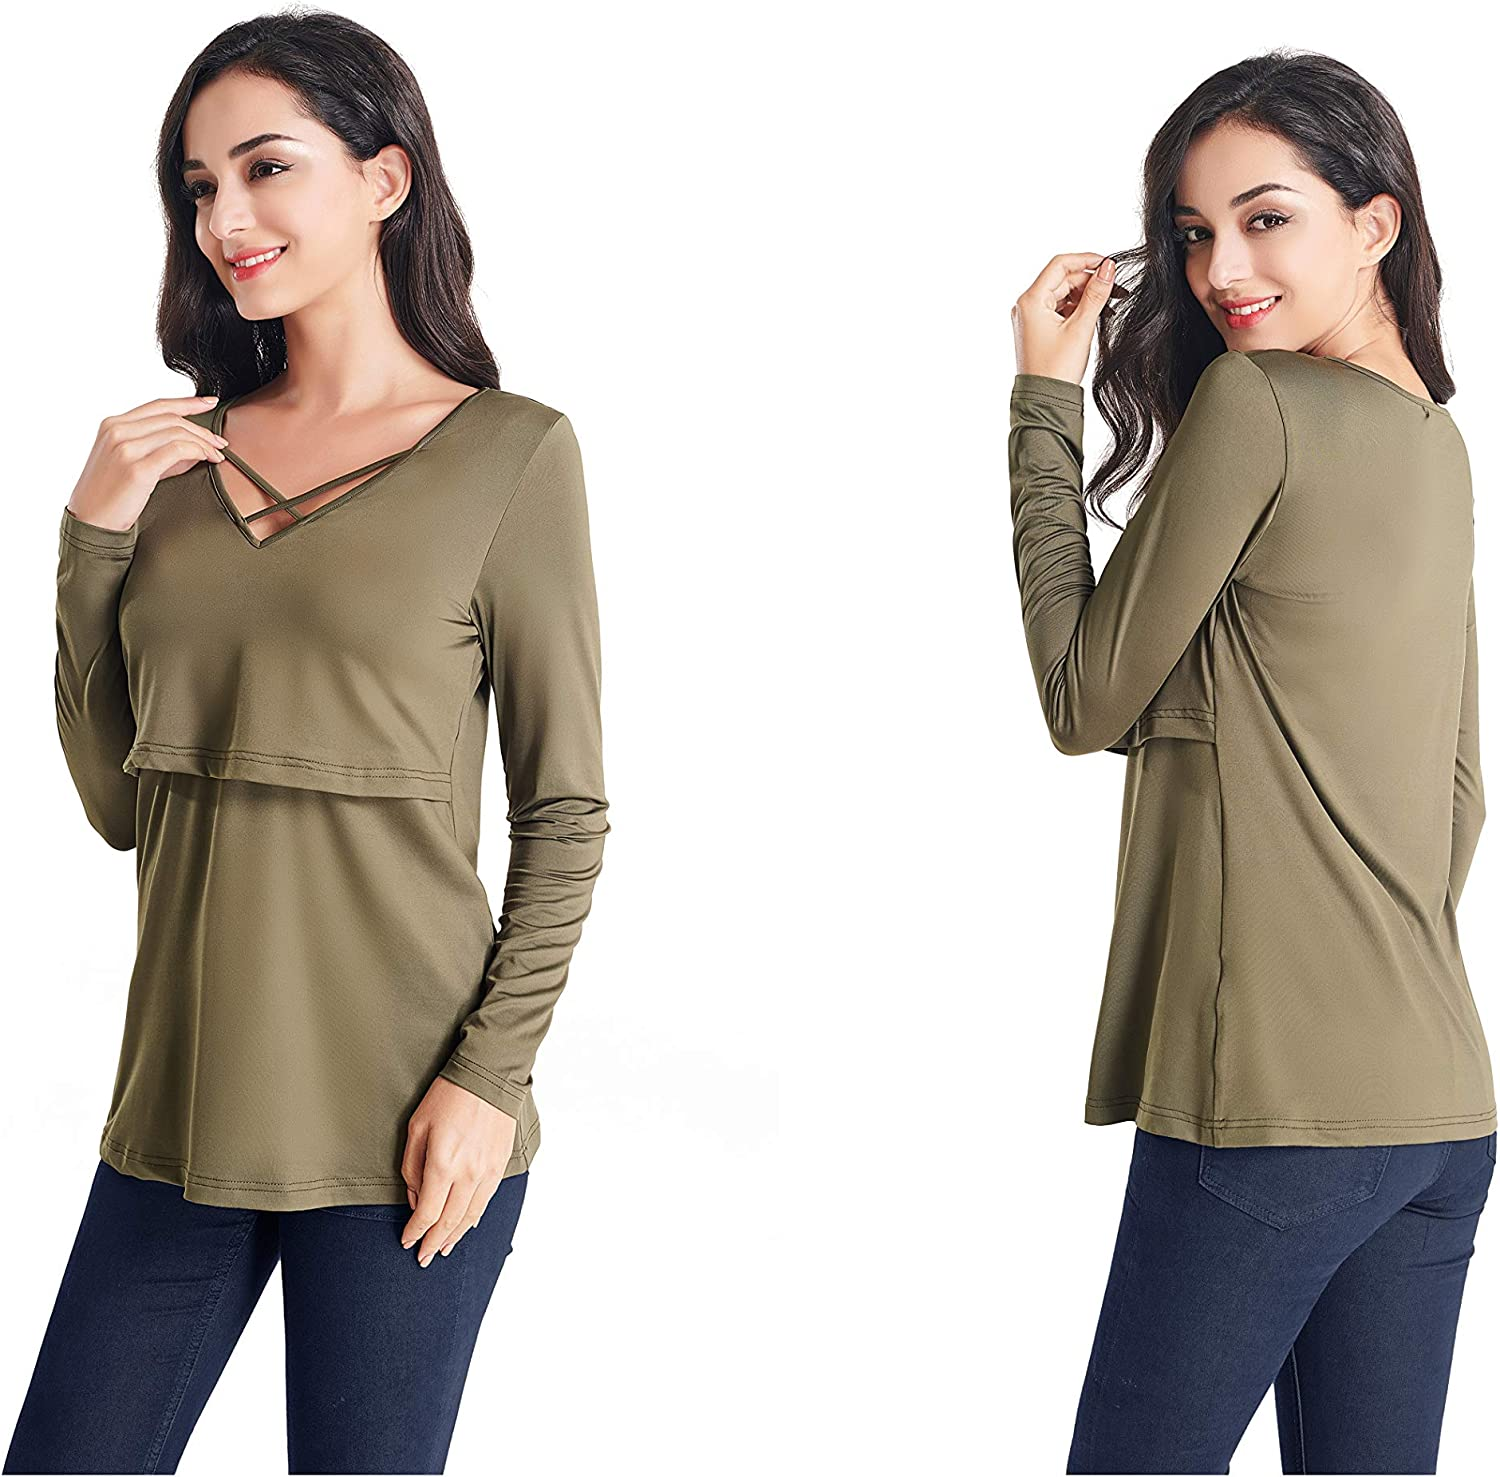 Womens Maternity Nursing Tops Long Sleeve Breastfeeding T-Shirt Comfy Sweaters V-Neck